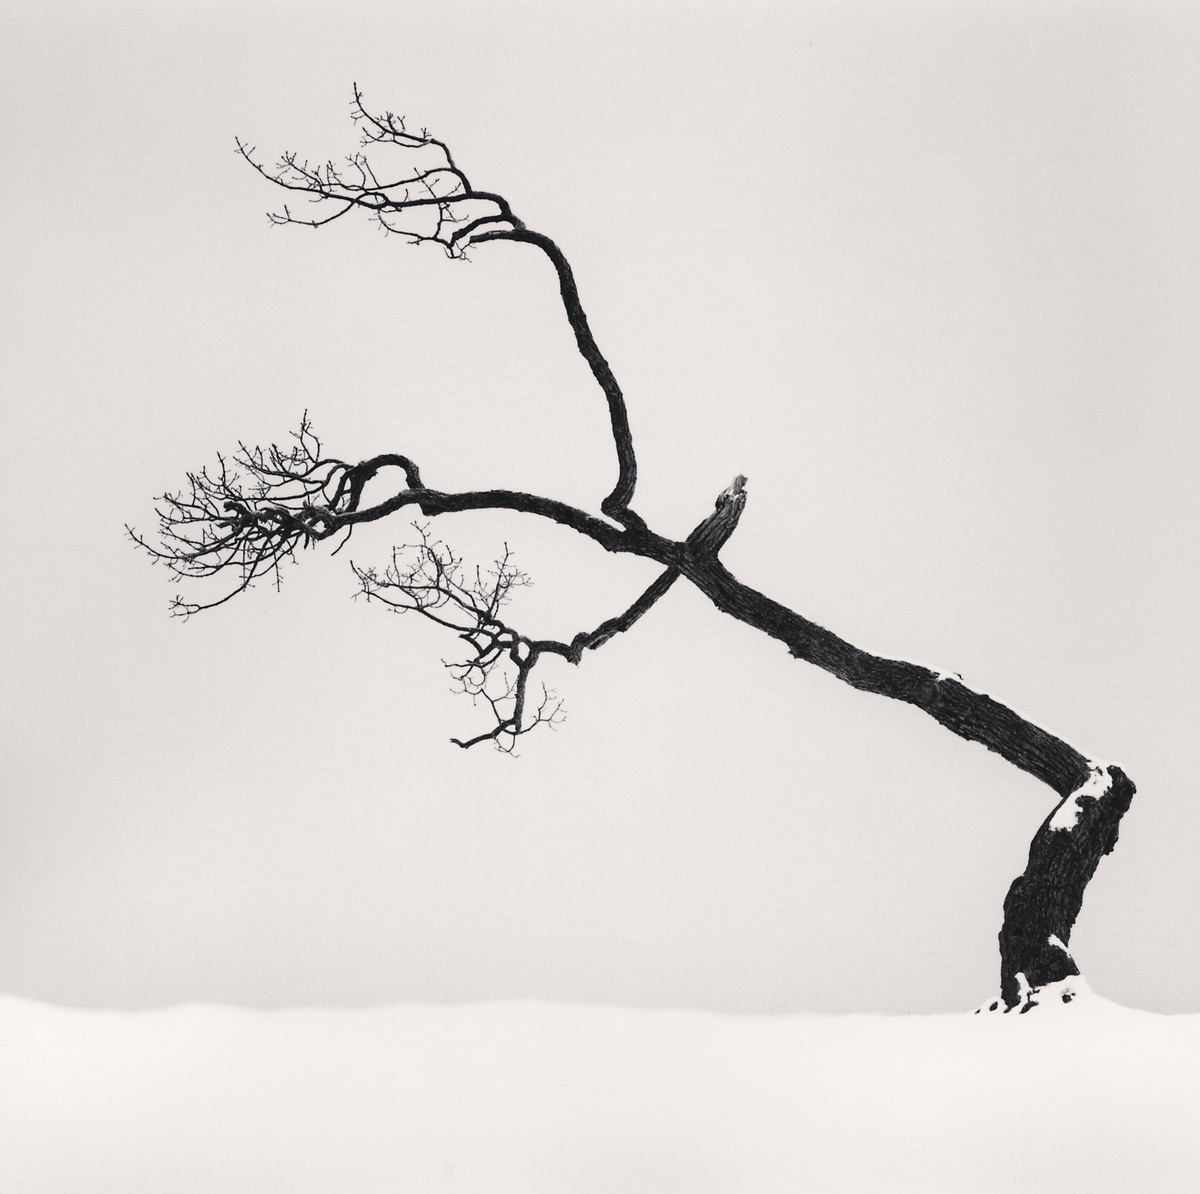 Michael Kenna Kussharo Lake Tree, Study 6, Kotan, Hokkaido, Japan 2007 Sepia Toned Silver Gelatin Print From An Edition Of 45 8 x 8 Inches